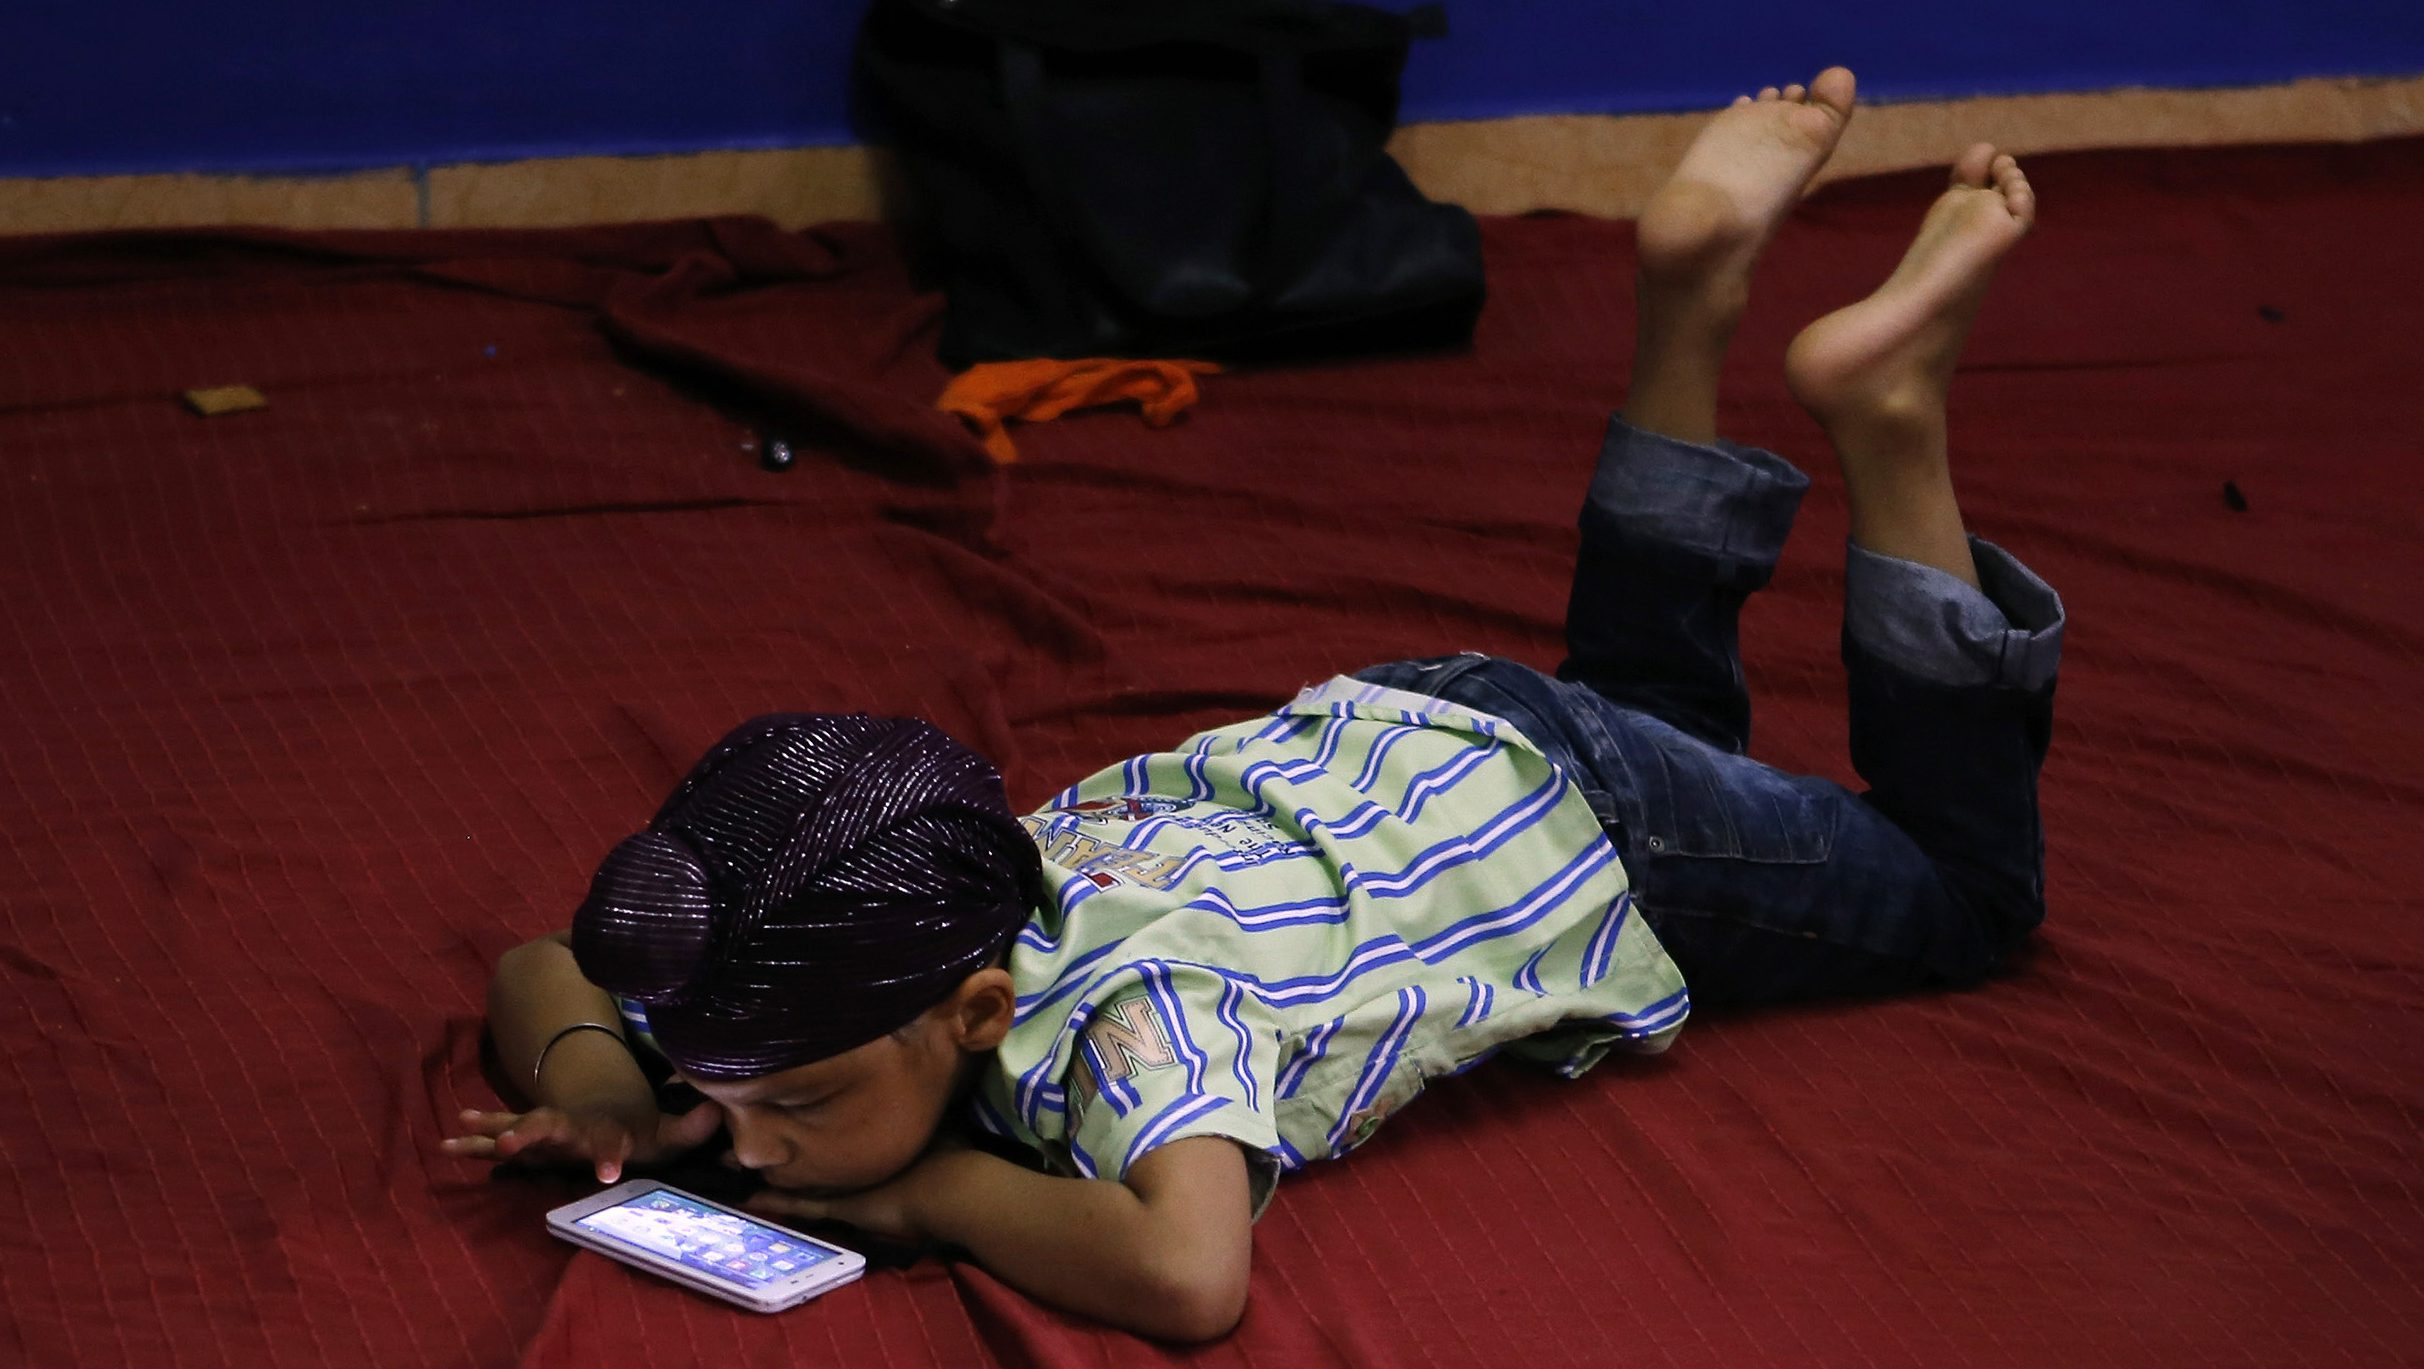 A young Sikh plays with a smartphone inside a Sikh temple during their Baisakhi festival in Palma de Mallorca on the Spanish Balearic island of Mallorca, April 27, 2014. Sikhs celebrate Baisakhi, a harvest festival, as the beginning of the New Year.   REUTERS/Enrique Calvo (SPAIN - Tags: RELIGION SOCIETY) - GM1EA4S01Z201